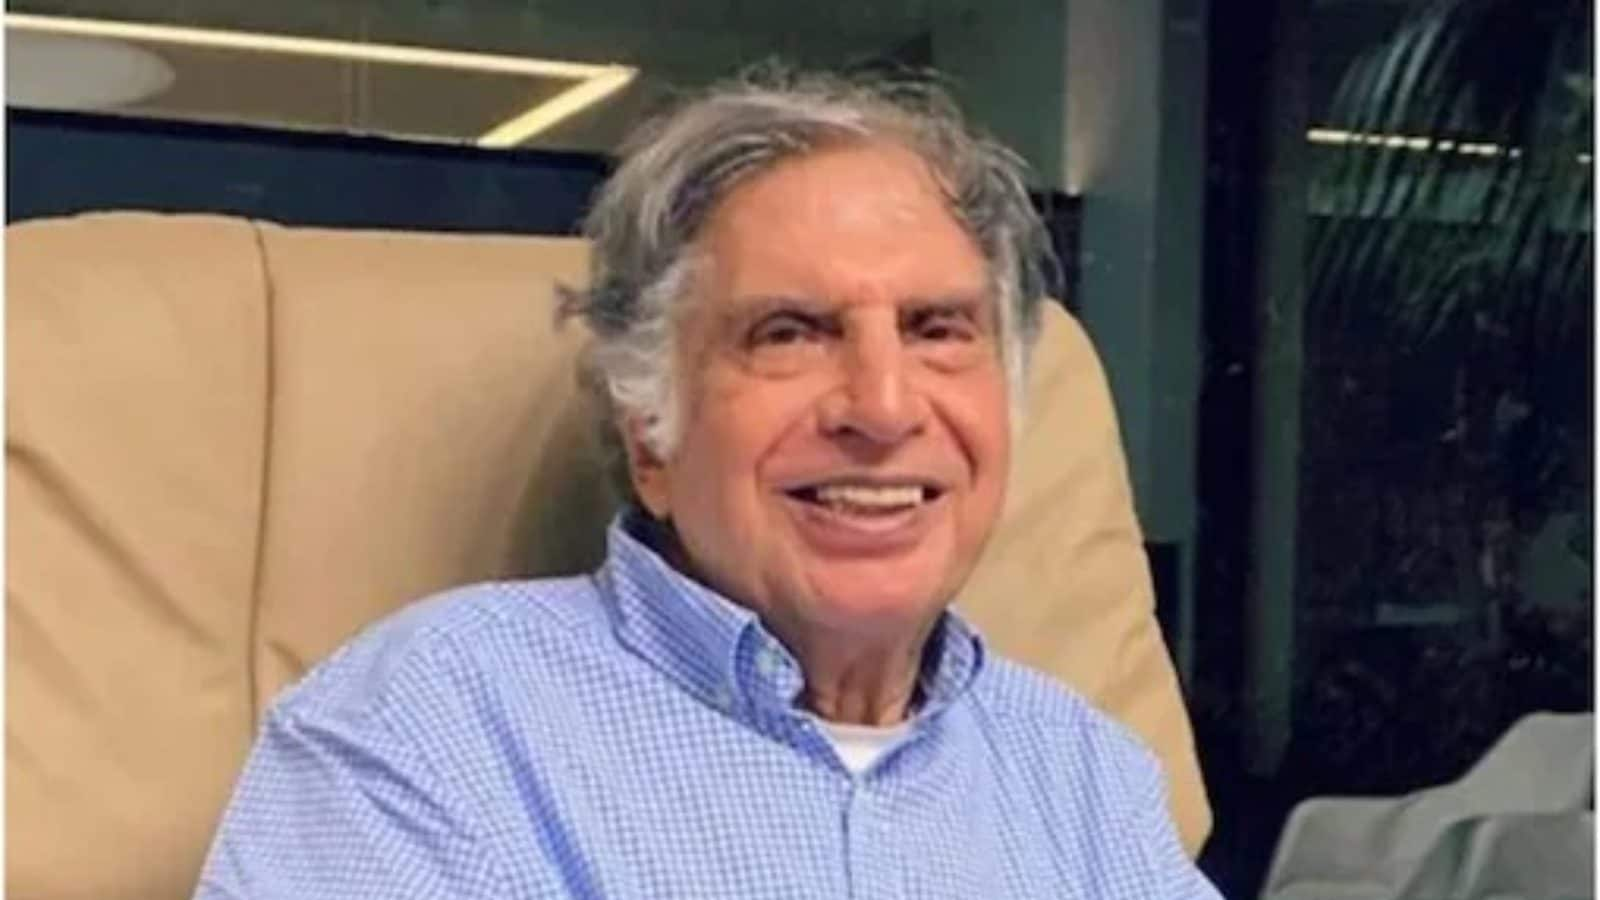 Ratan Tata Once Washed Utensils in Restaurants, Today He's Most Successful Businessman